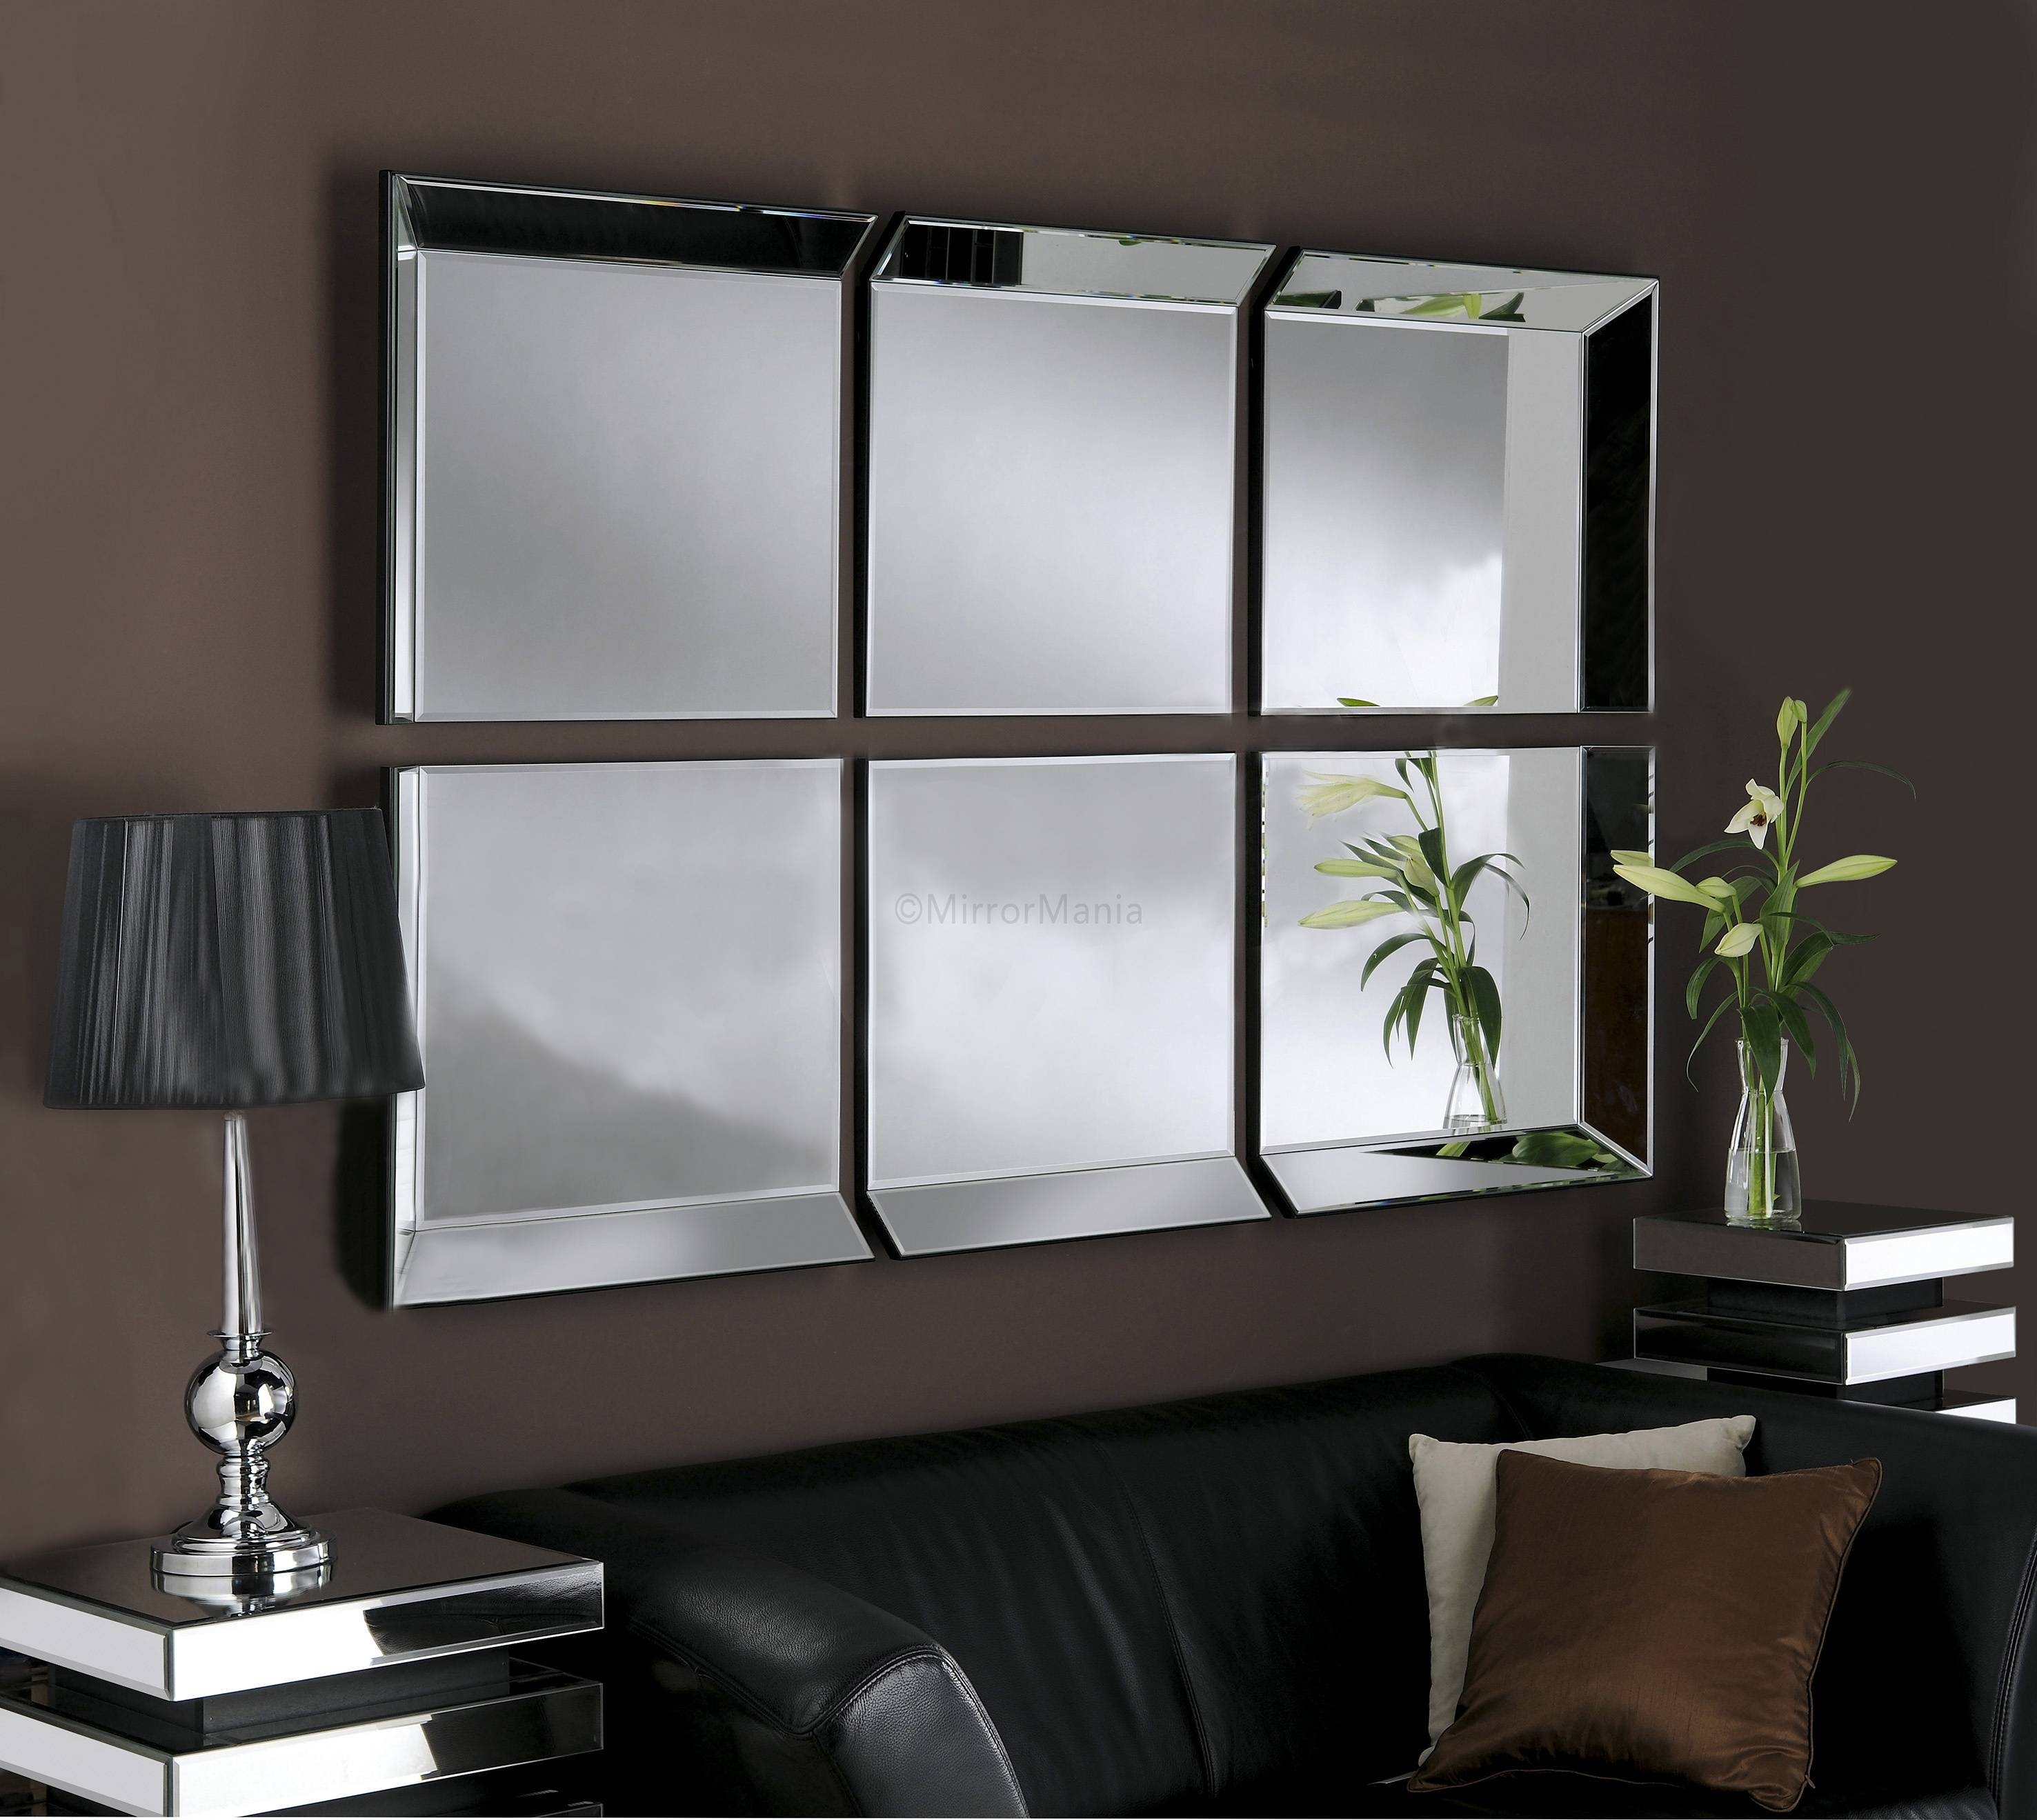 25 The Best Large Glass Bevelled Wall Mirrors